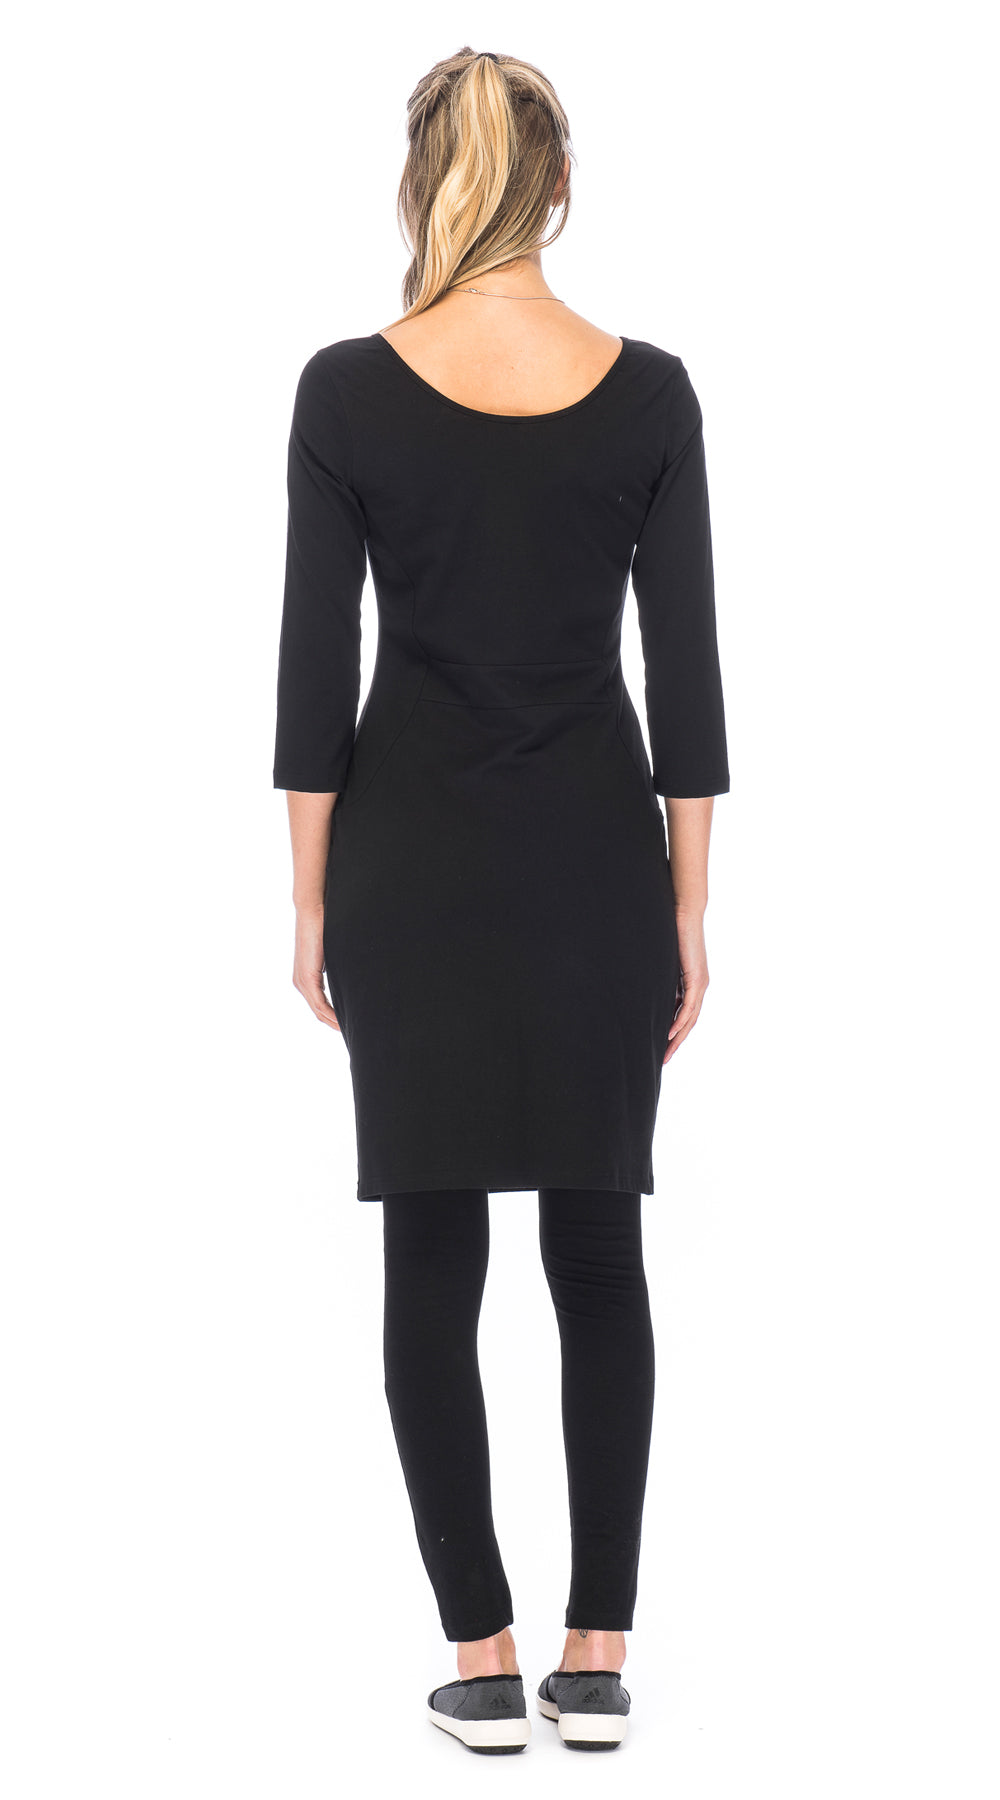 Matrix Dress - black - organic cotton